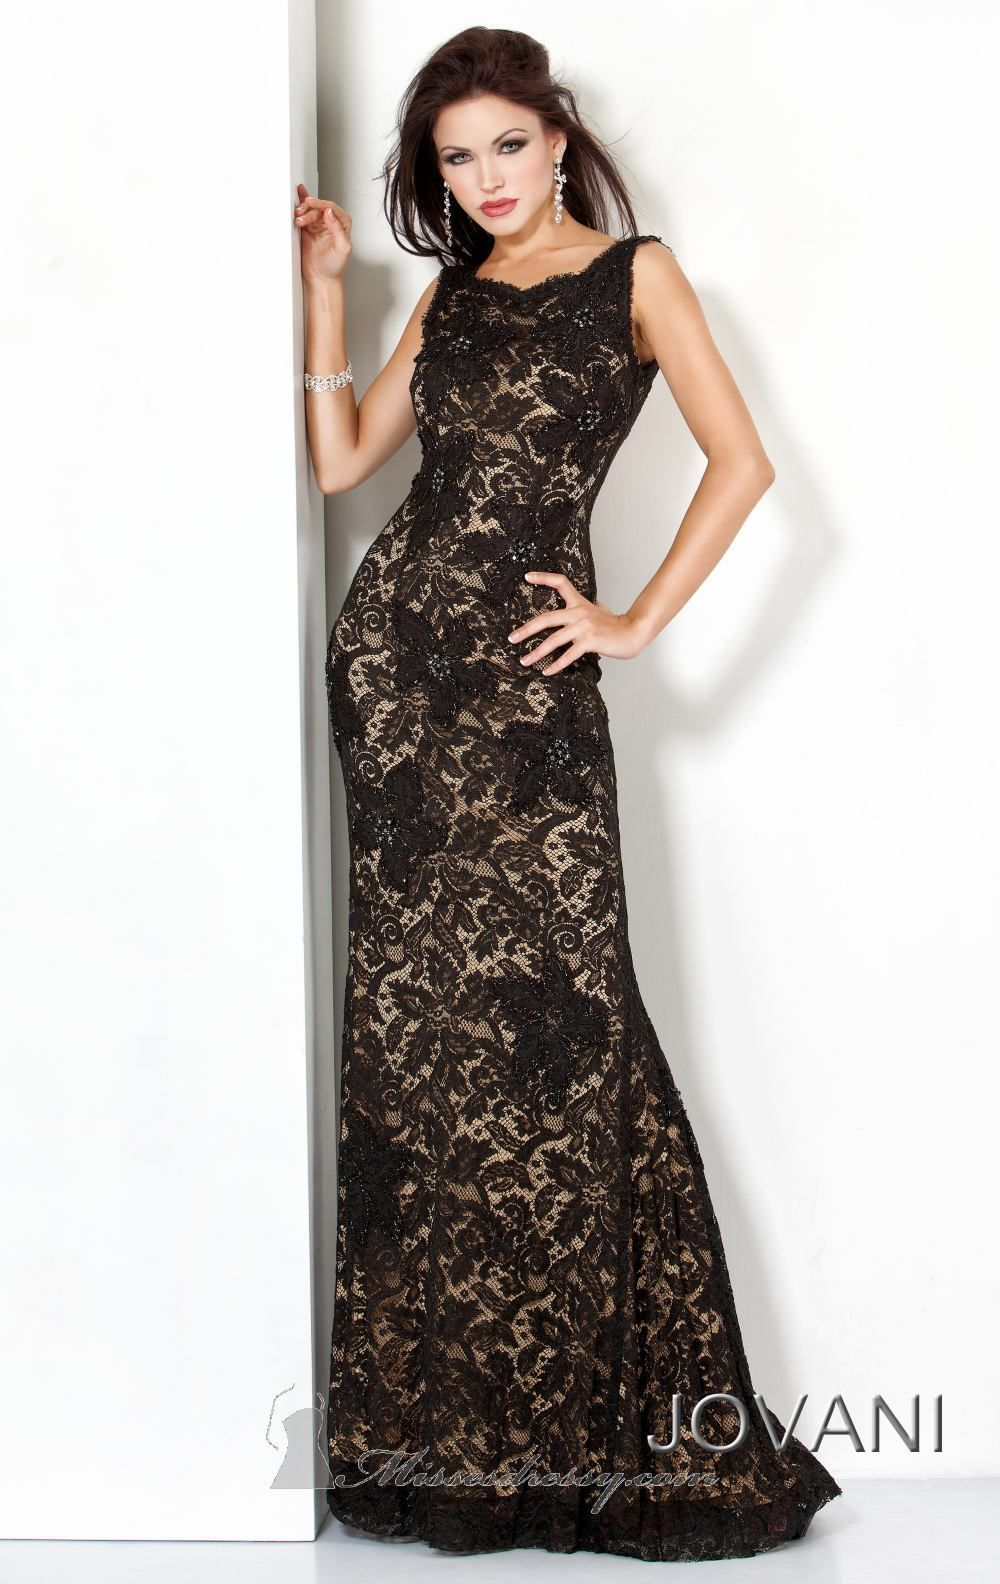 Jovani evening dresses pinterest exclusive collection